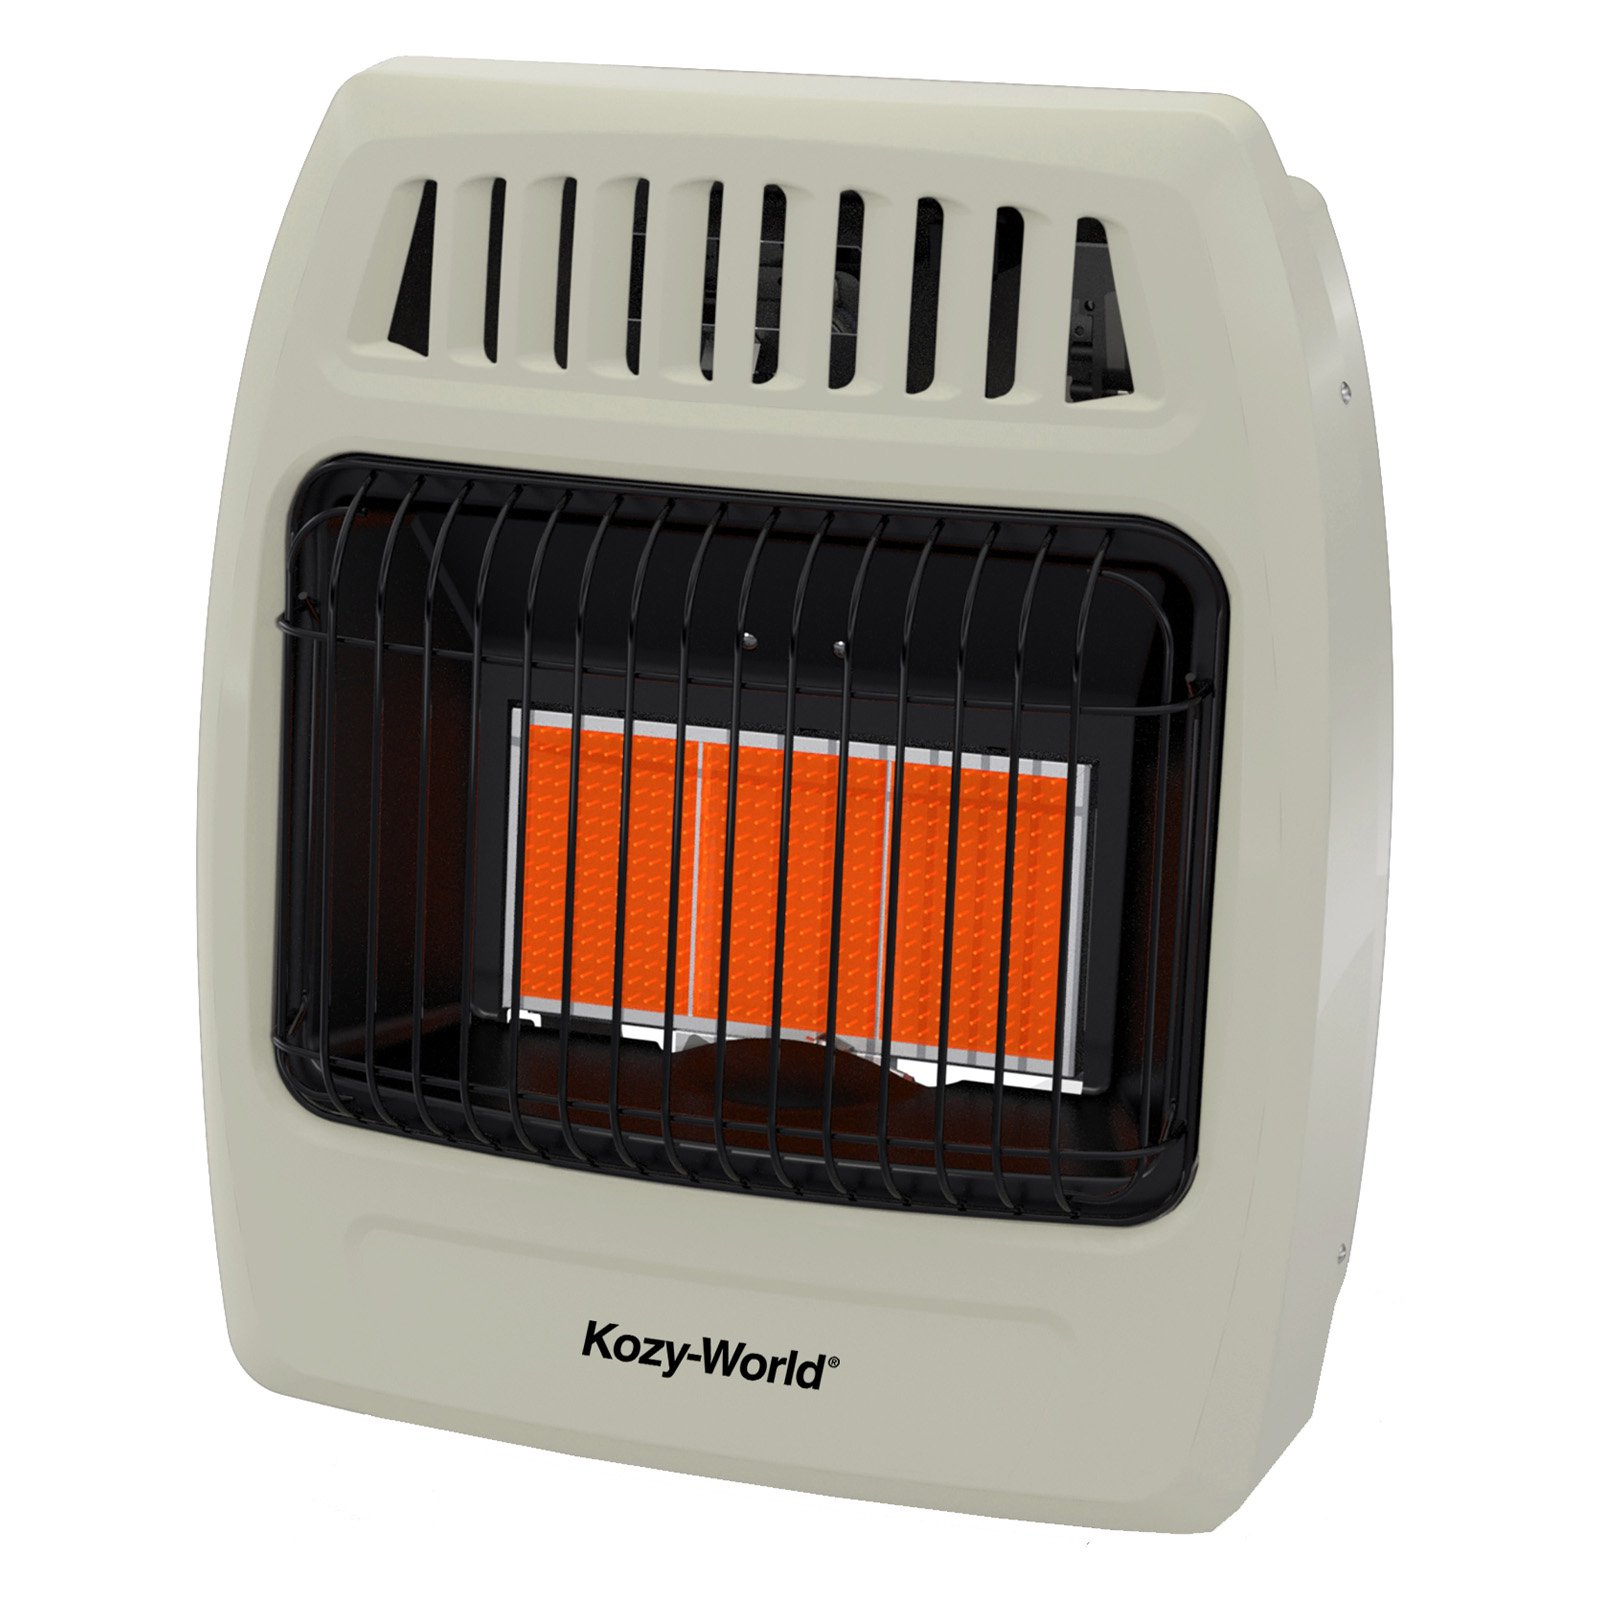 Kozy World KWD325 3 Plaque Infrared Wall Heater